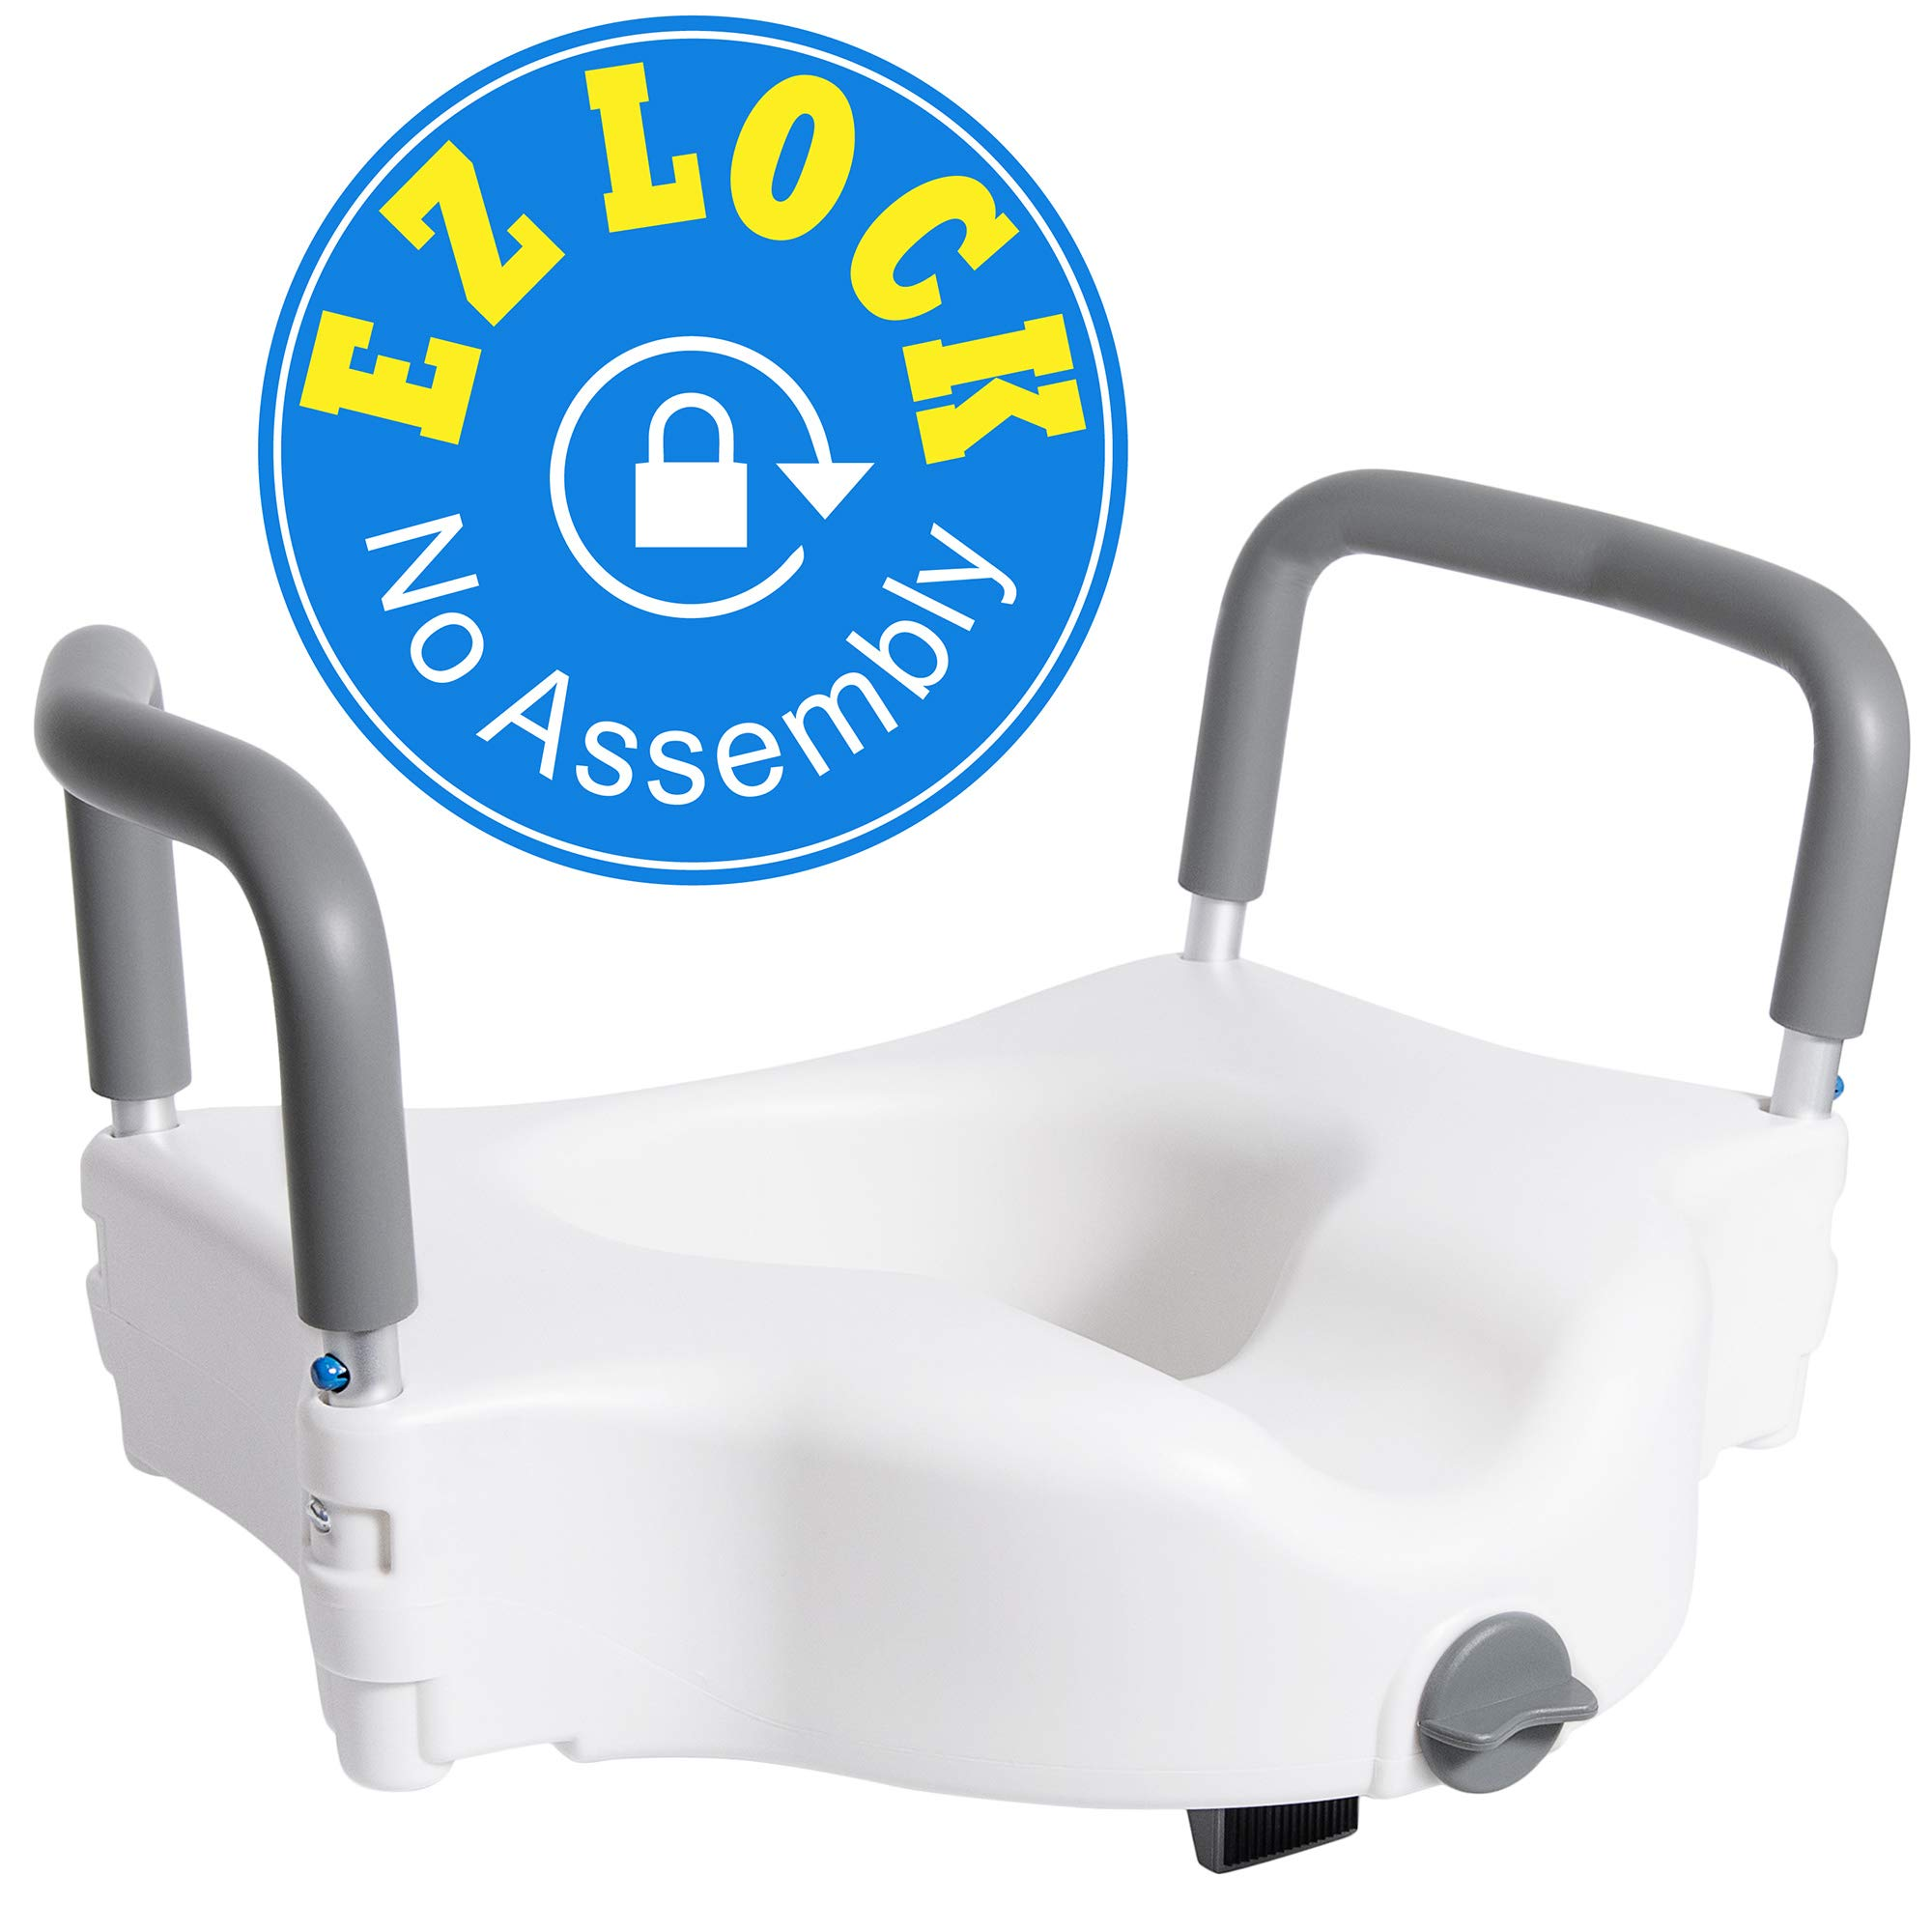 Vaunn Medical Elevated Raised Toilet Seat & Commode Booster Seat Riser with Removable Padded Grab bar Handles & Locking Mechanism by Vaunn